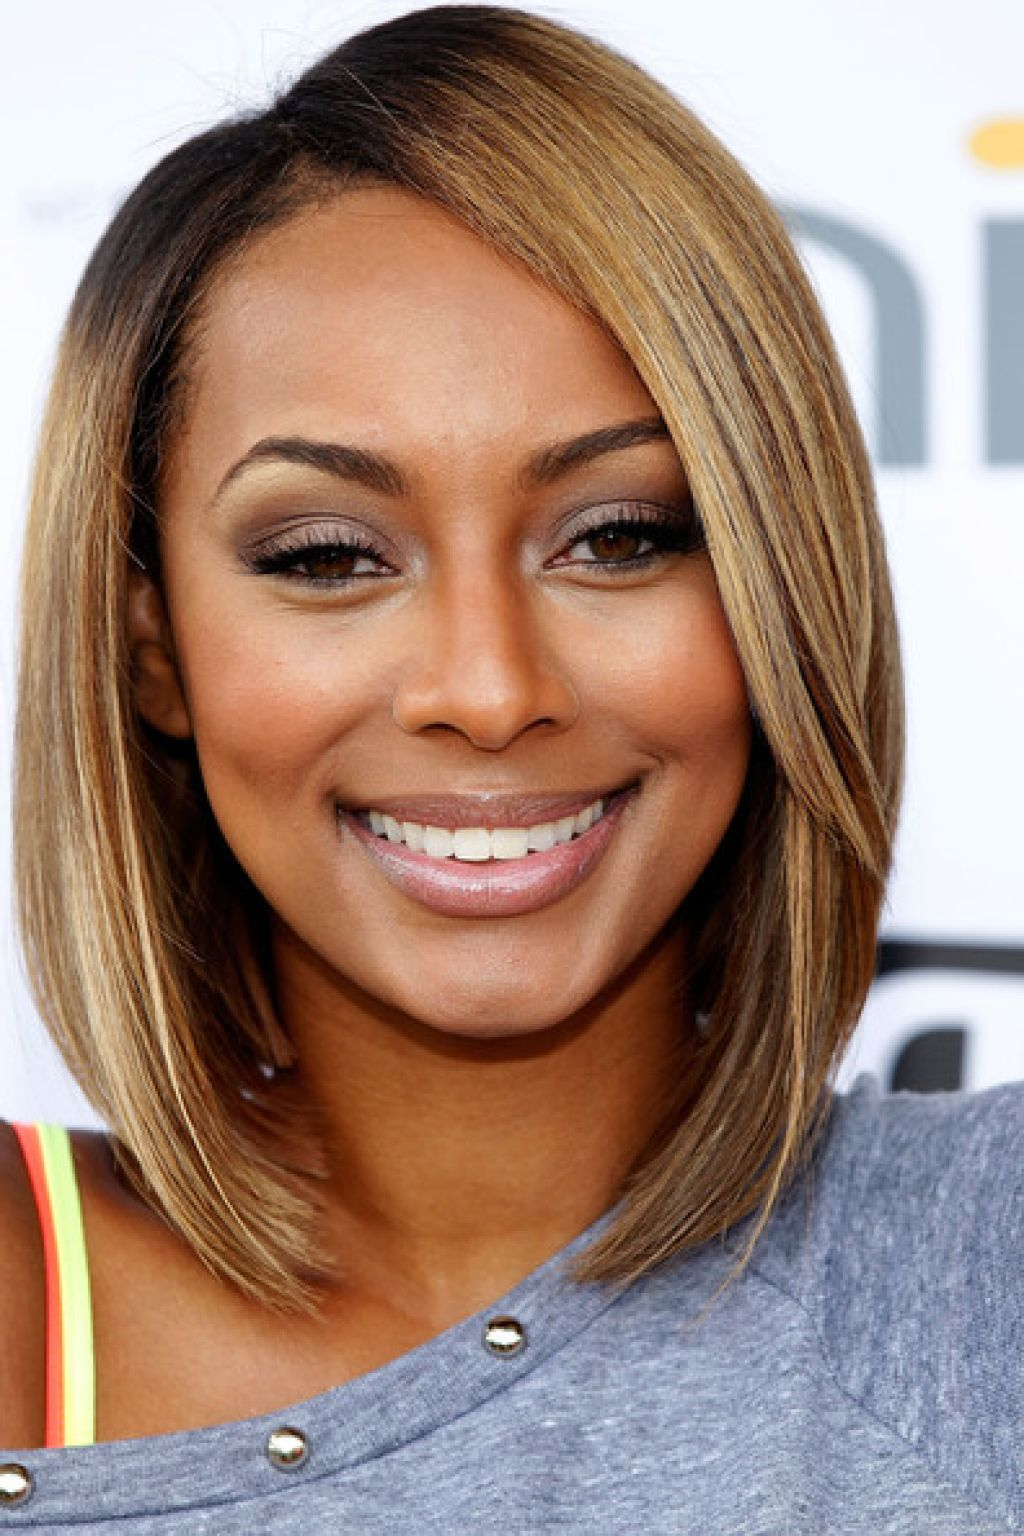 Shoulder Length Hairstyles For Black Women